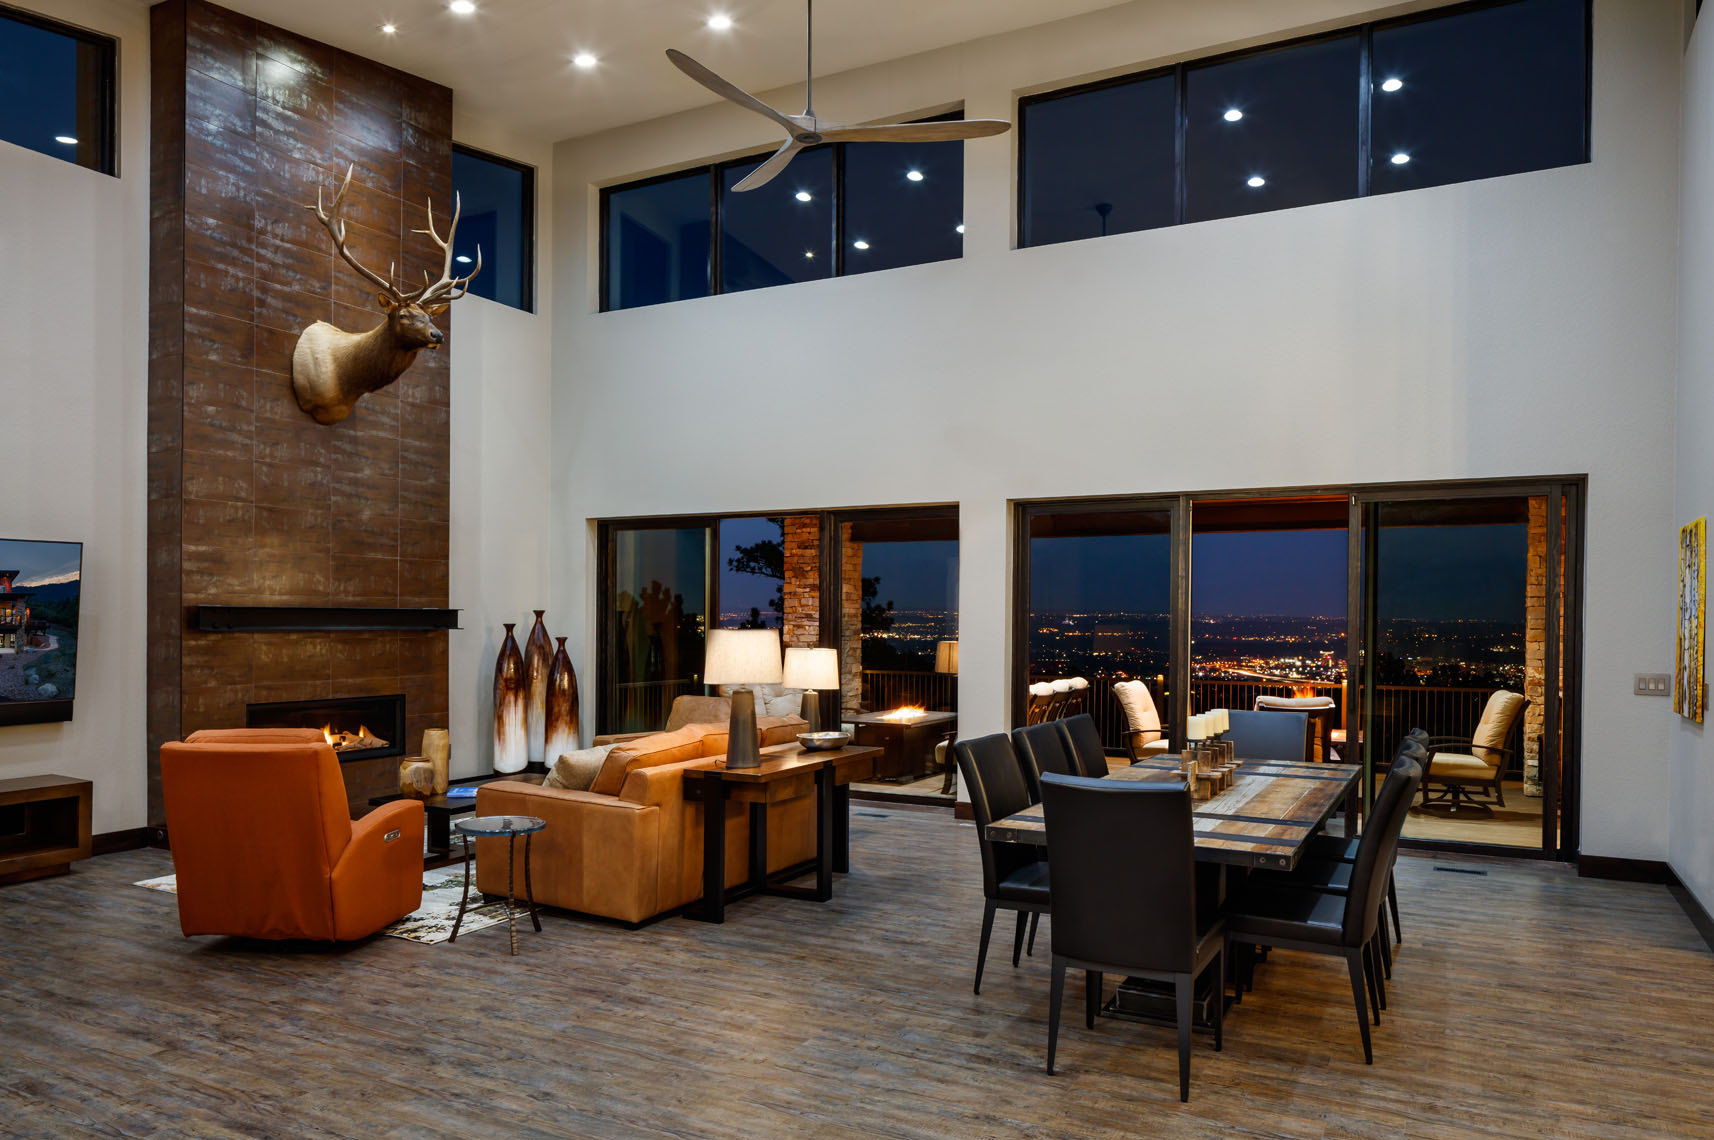 Architectural interior of residential luxury home Colorado Springs